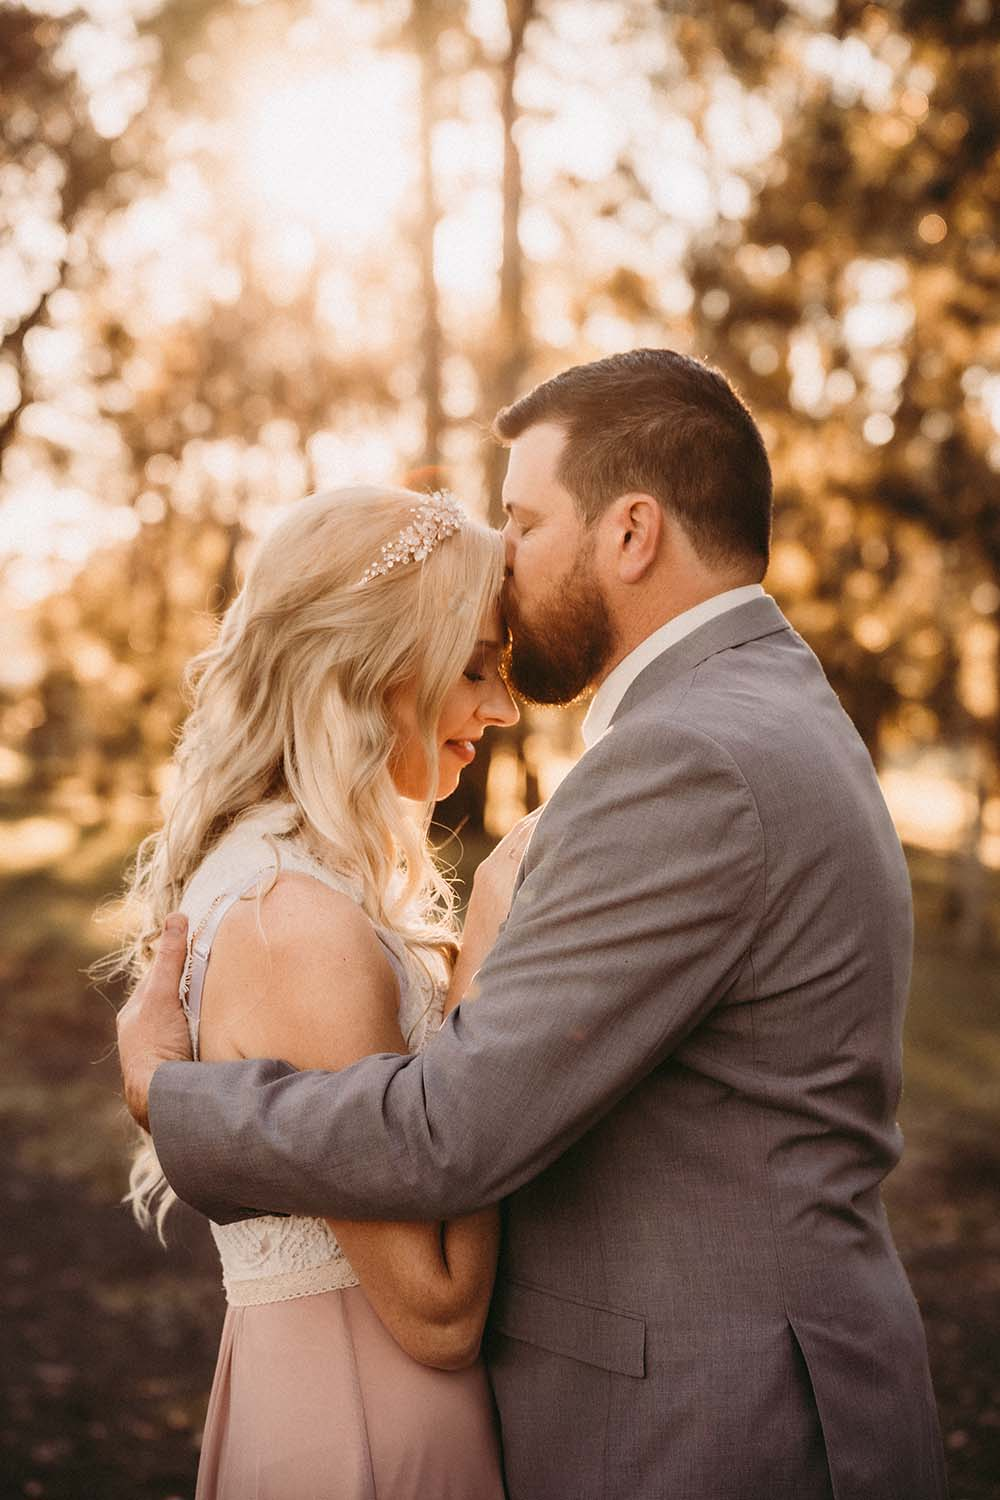 Wedding Photography - pure bliss